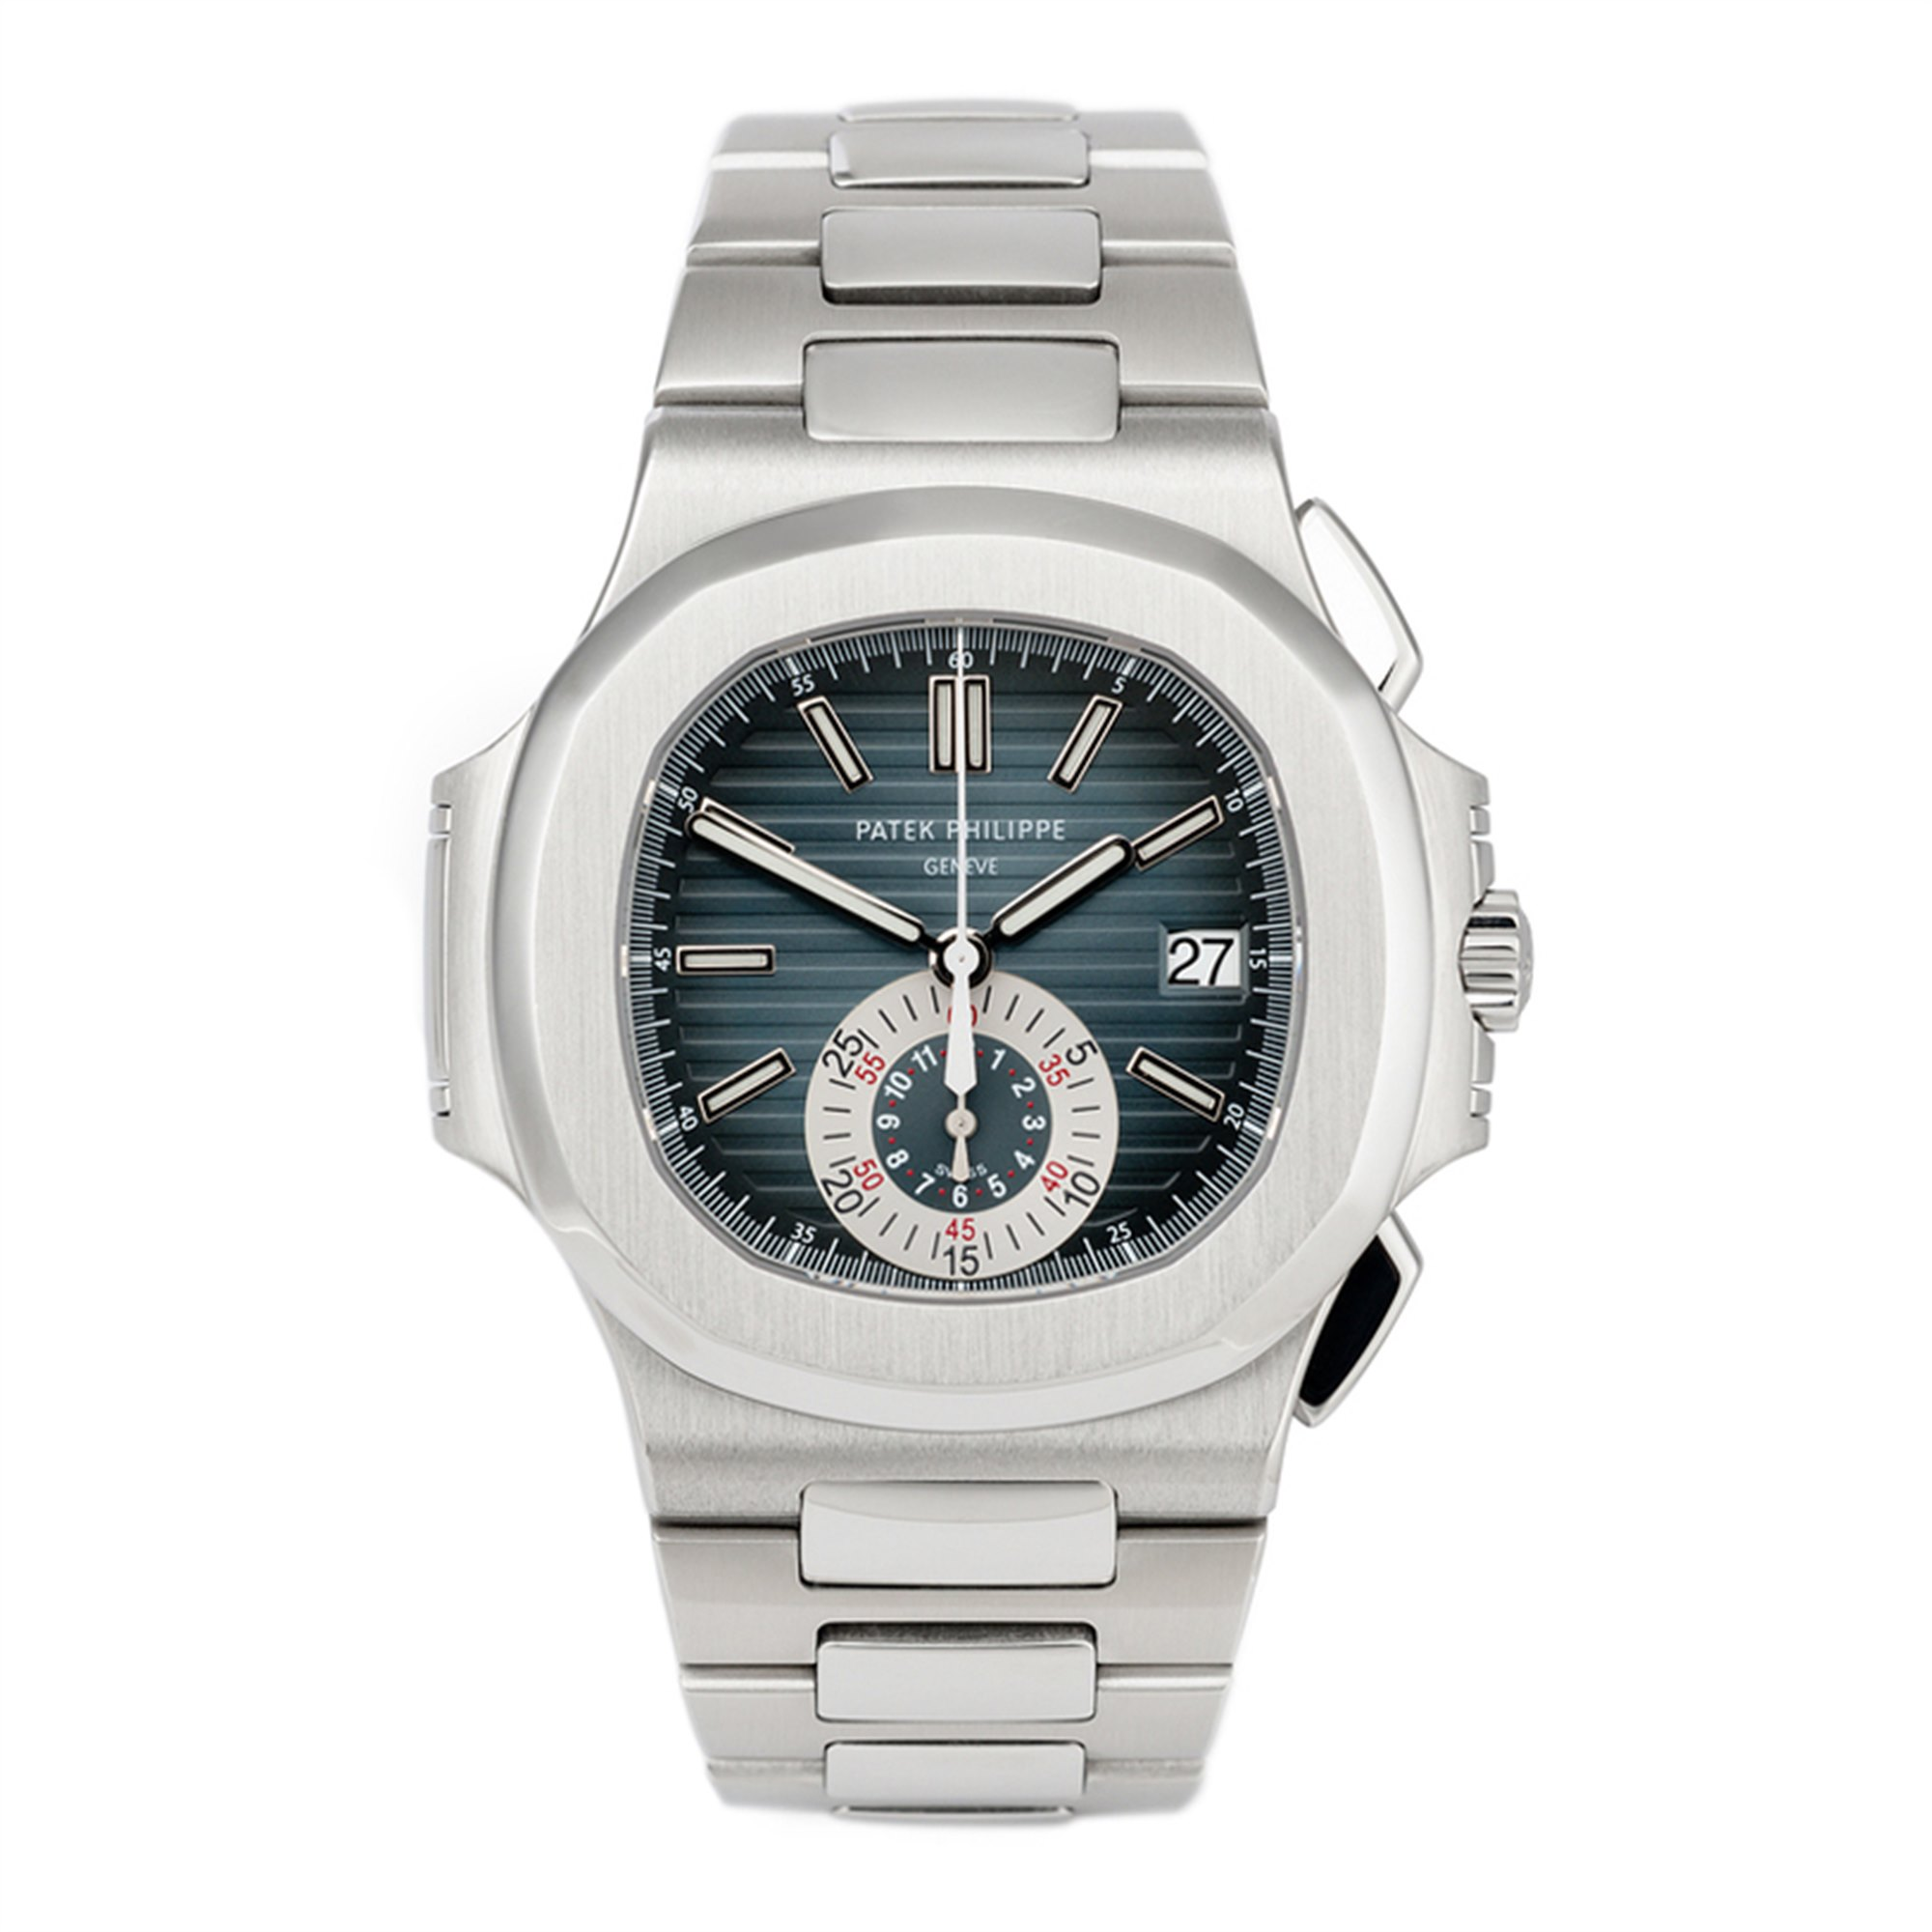 Patek Philippe Nautilus Chronograph Roestvrij Staal 5980/1A-001